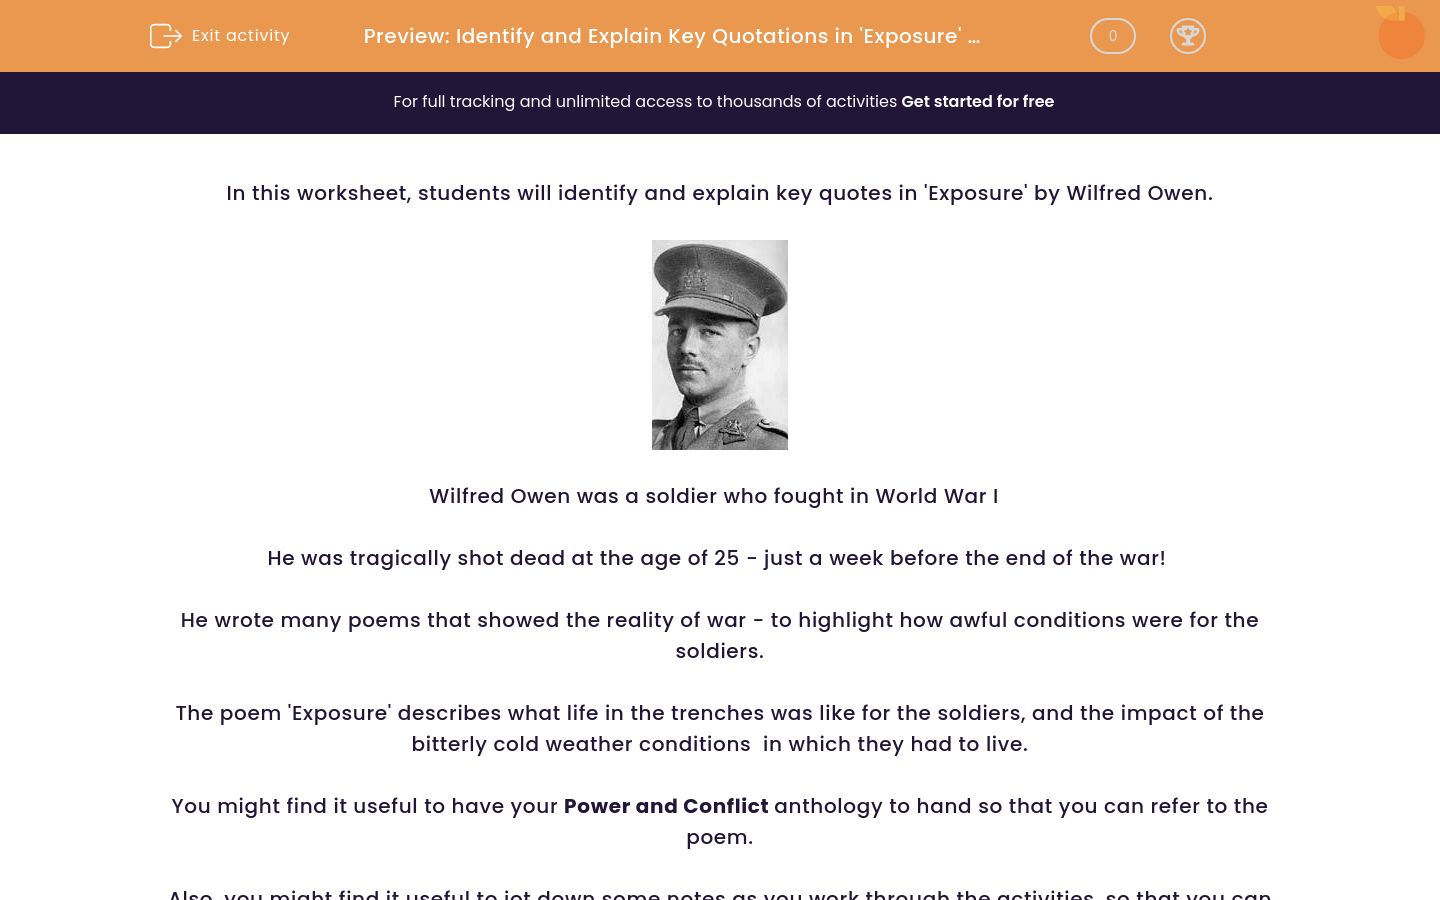 'Identify and Explain Key Quotations in 'Exposure' by Wilfred Owen ' worksheet